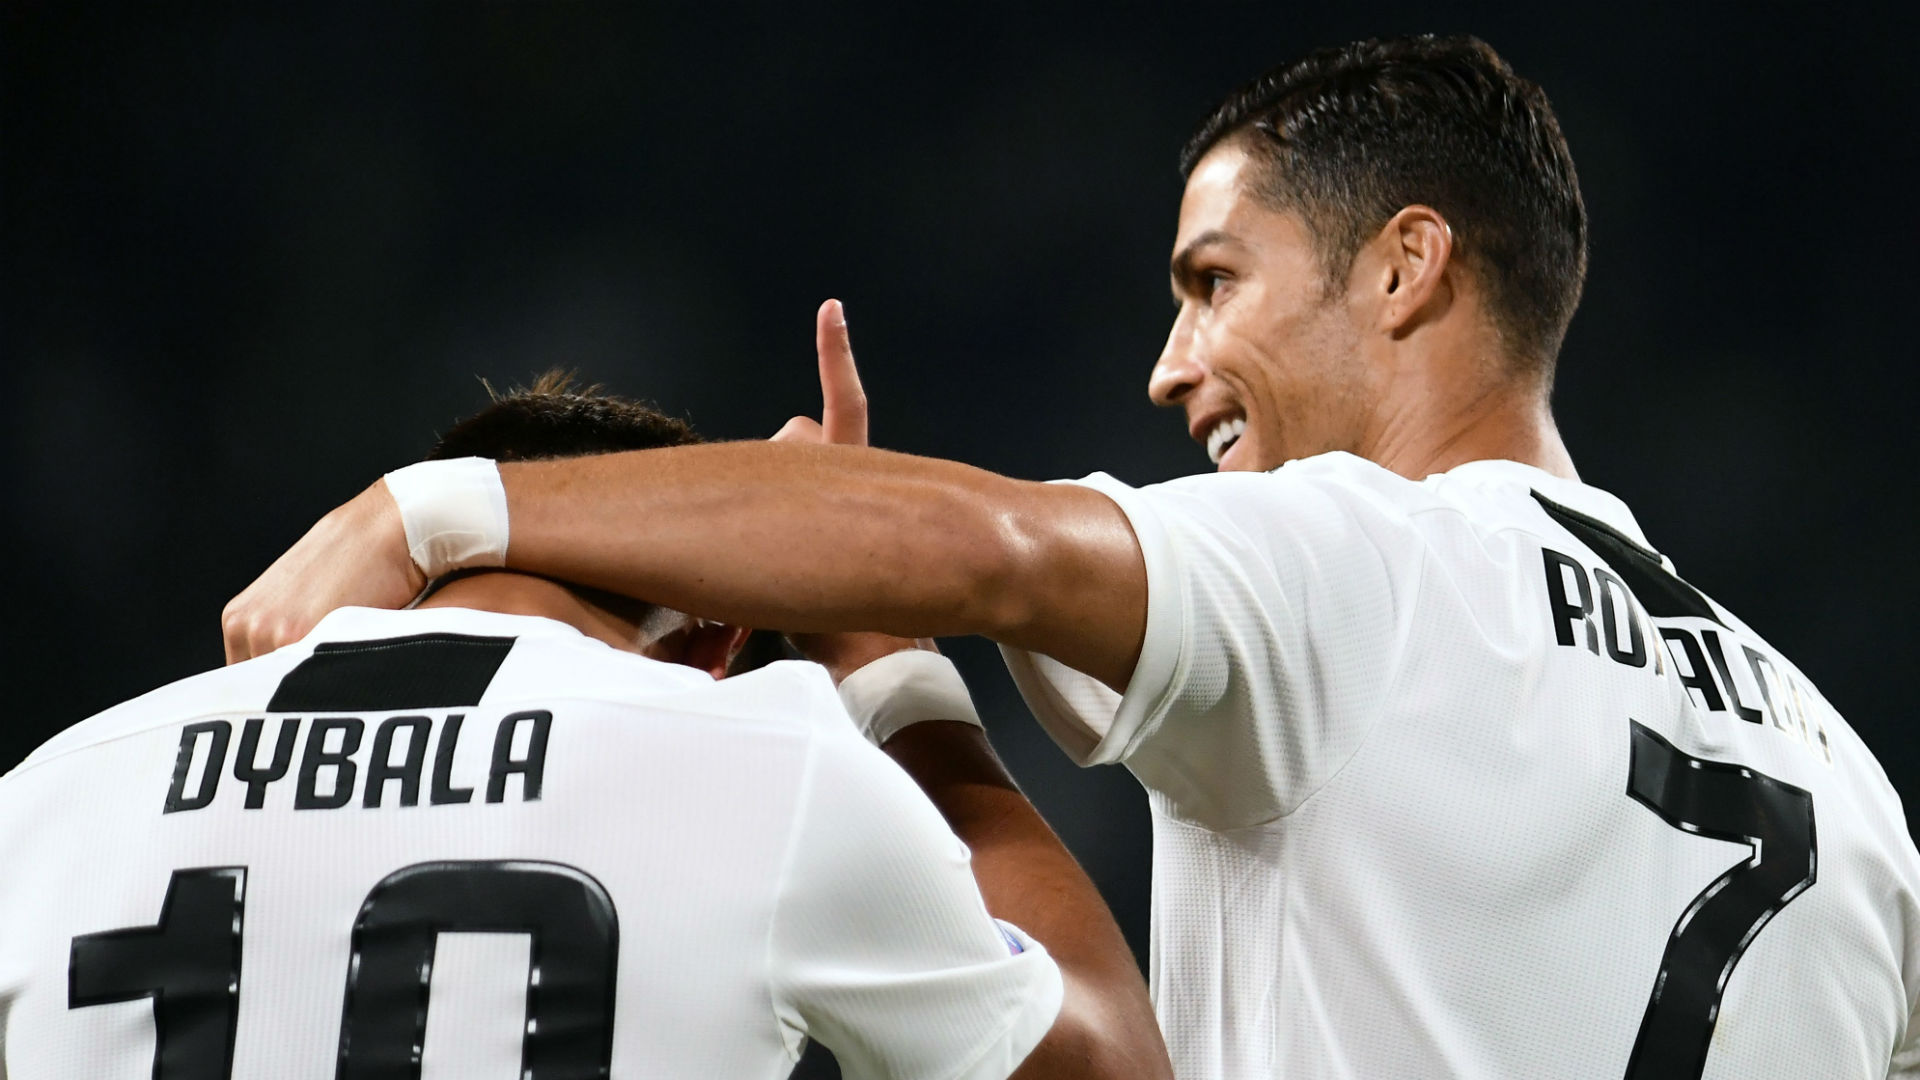 Serie A: Dybala, Matuidi star in Juventus win, Roma end losing streak